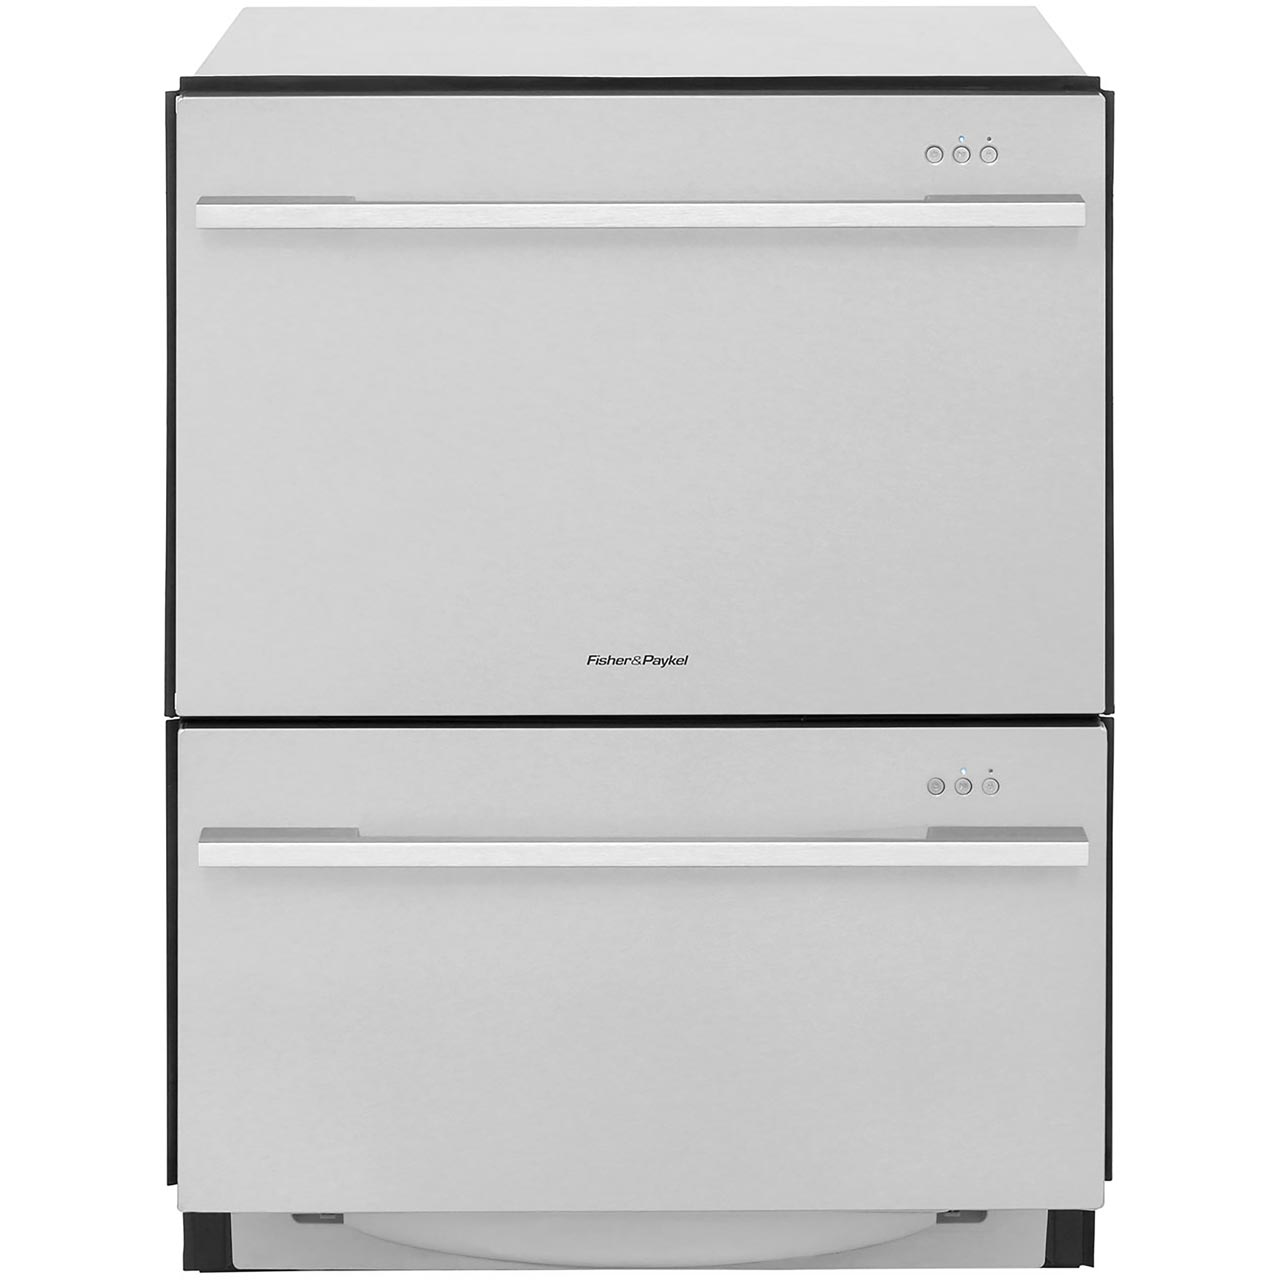 Fisher and paykel 2 drawer dishwasher - Fisher Paykel Double Dishdrawer Dd60ddfhx7 Fully Integrated Standard Dishwasher Stainless Steel Control Panel